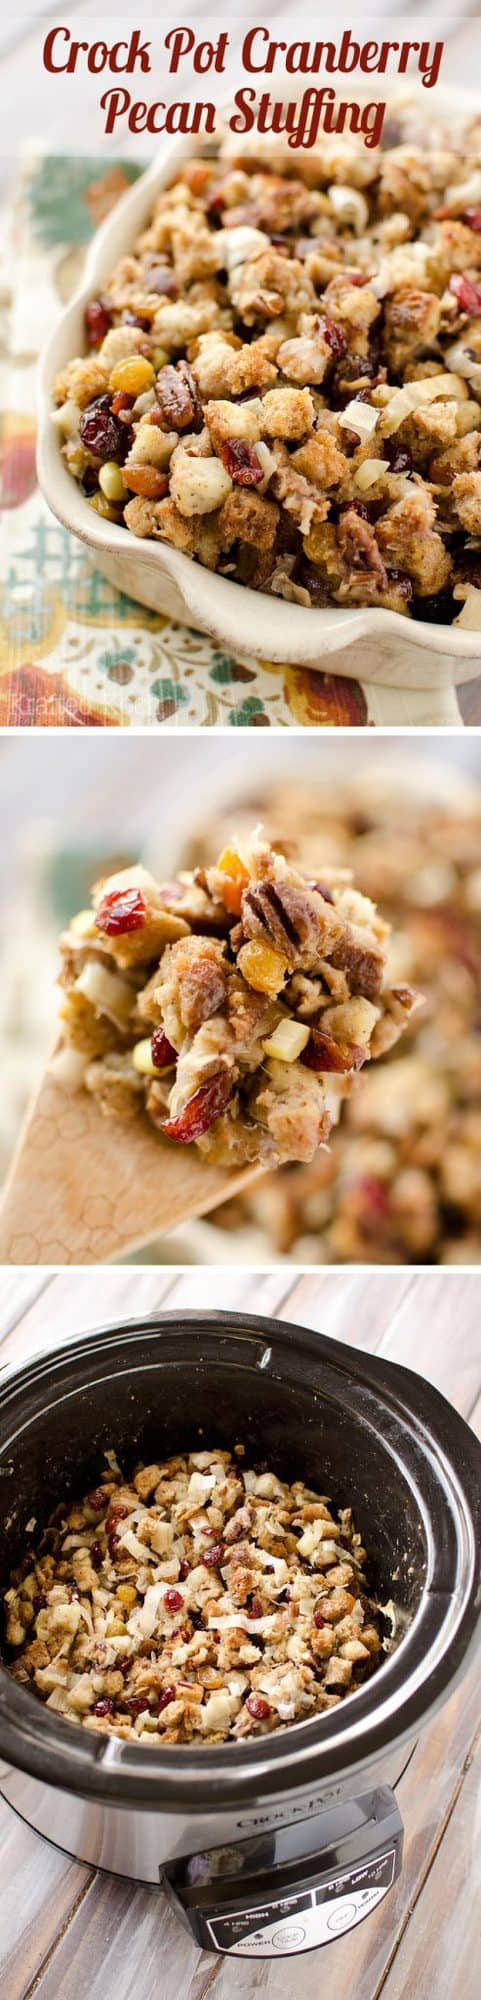 crock pot cranberry pecan stuffing is a light and moist stuffing made ...